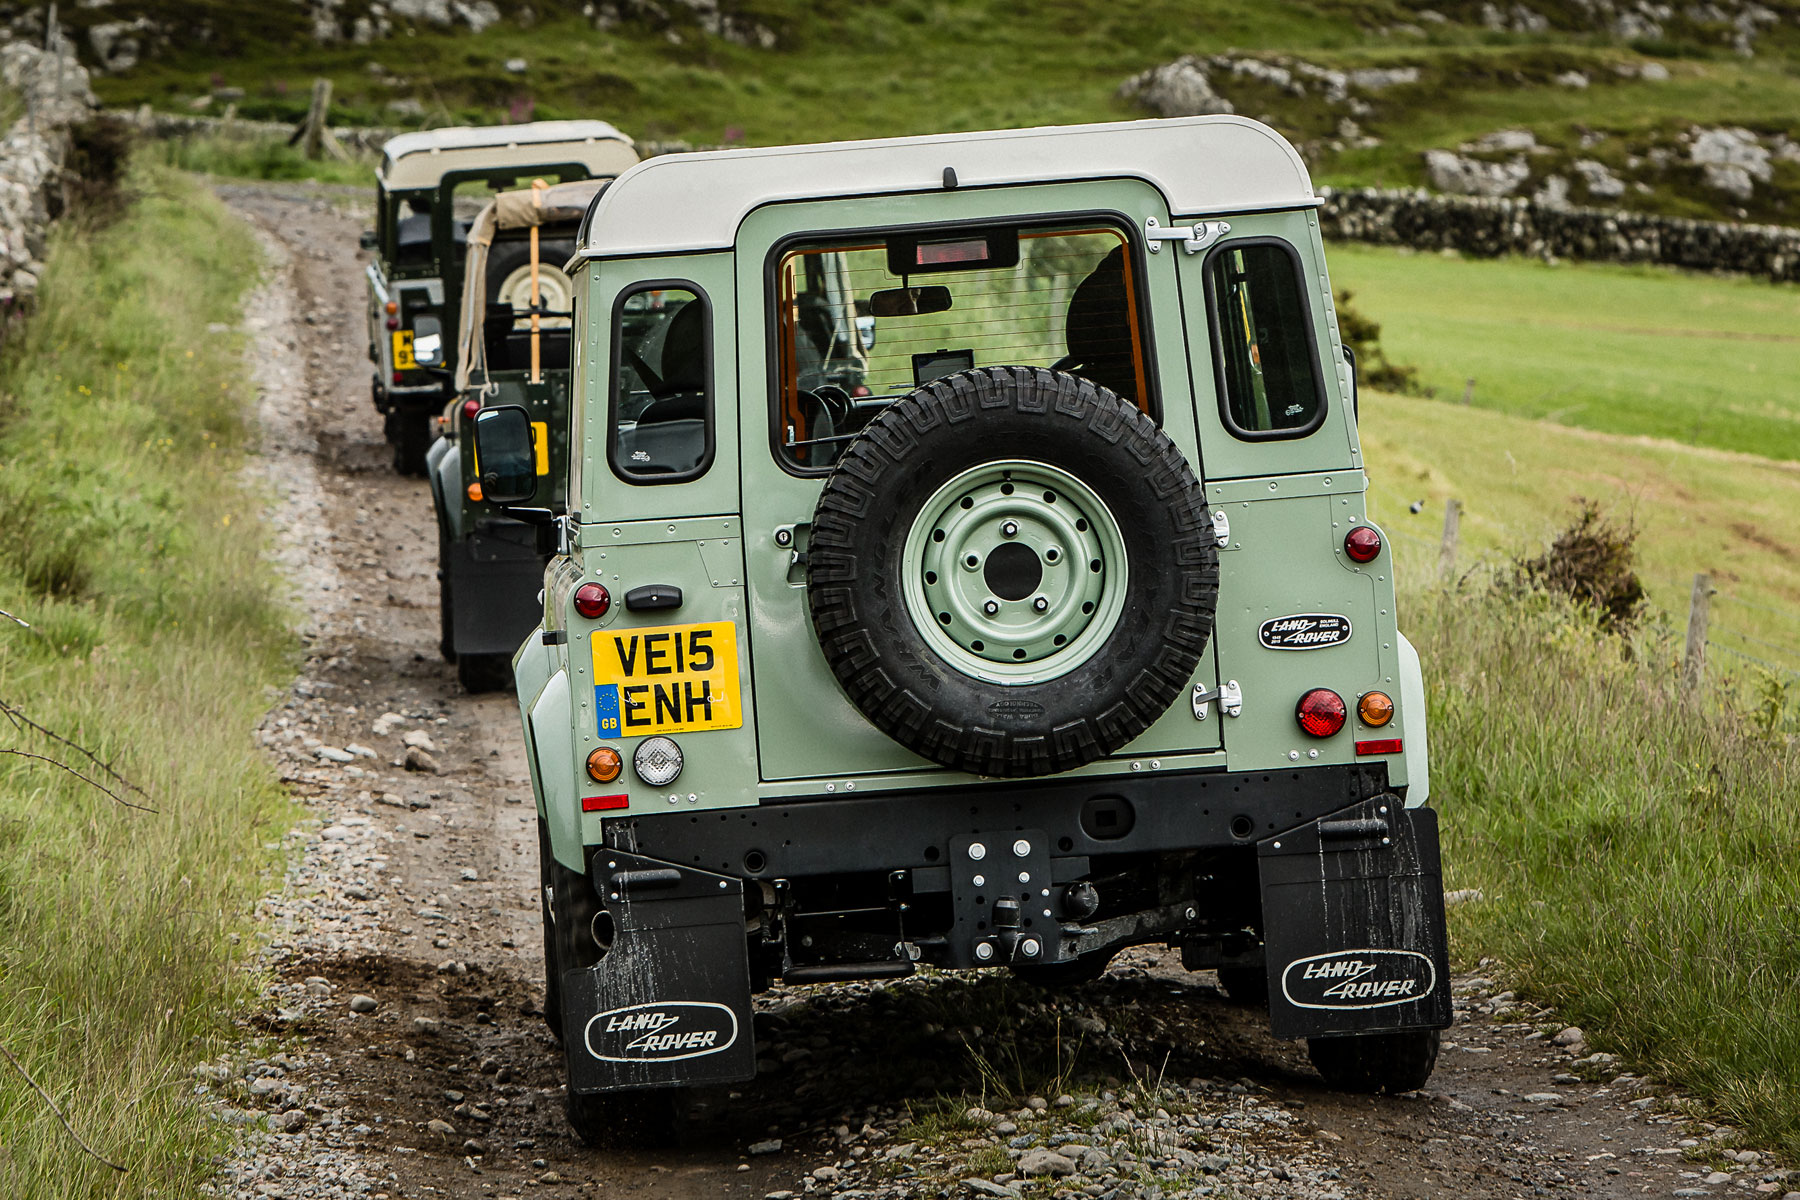 2015 Land Rover Defender: running costs